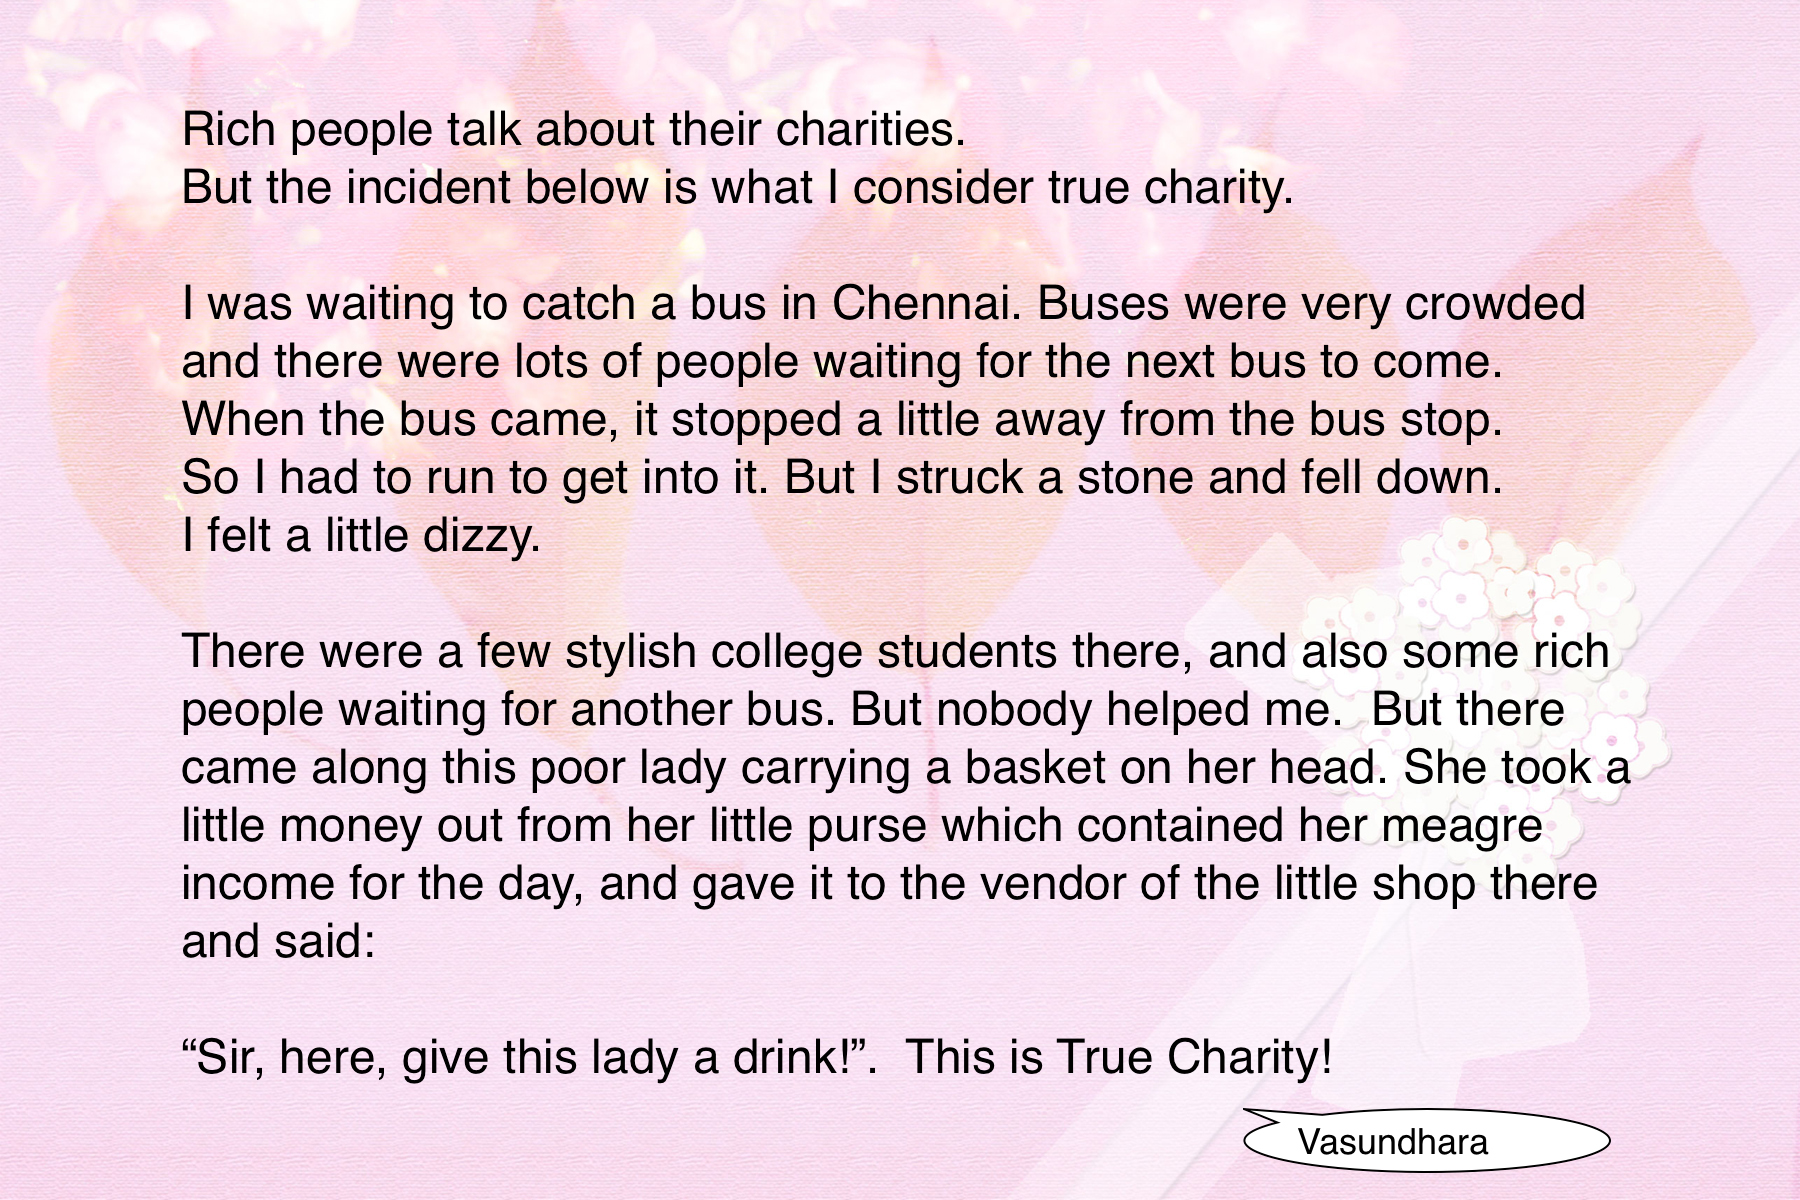 True Charity does not depend on wealth